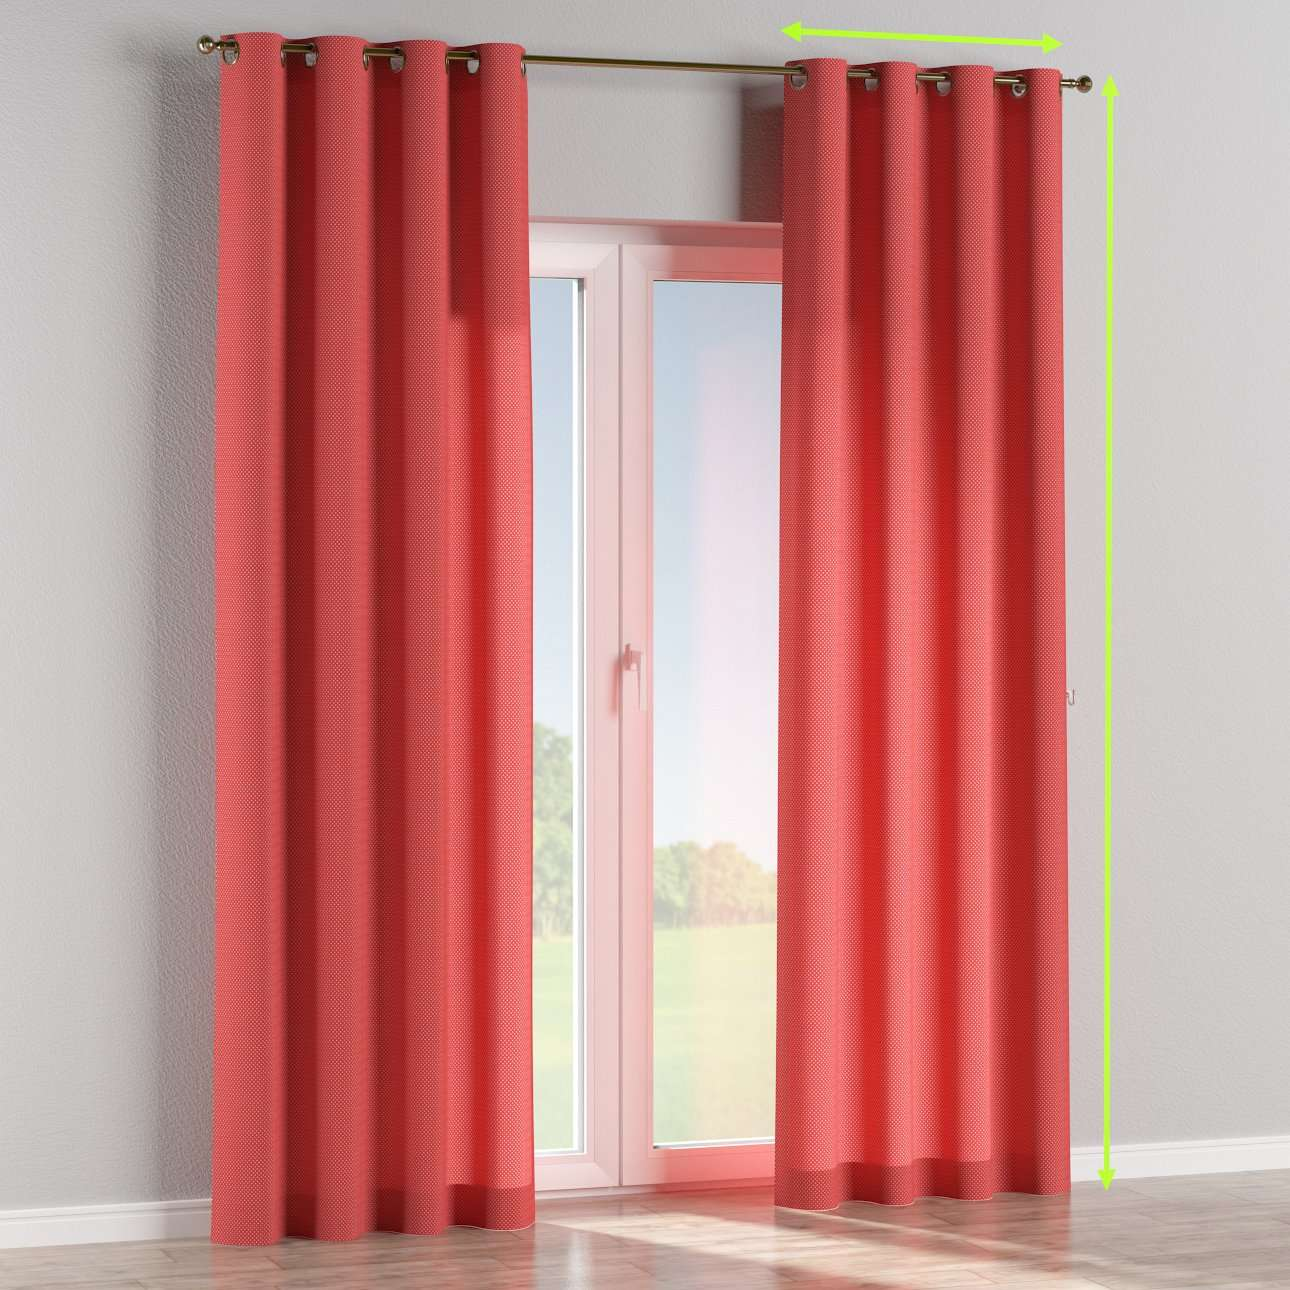 Eyelet curtains in collection Ashley, fabric: 137-50